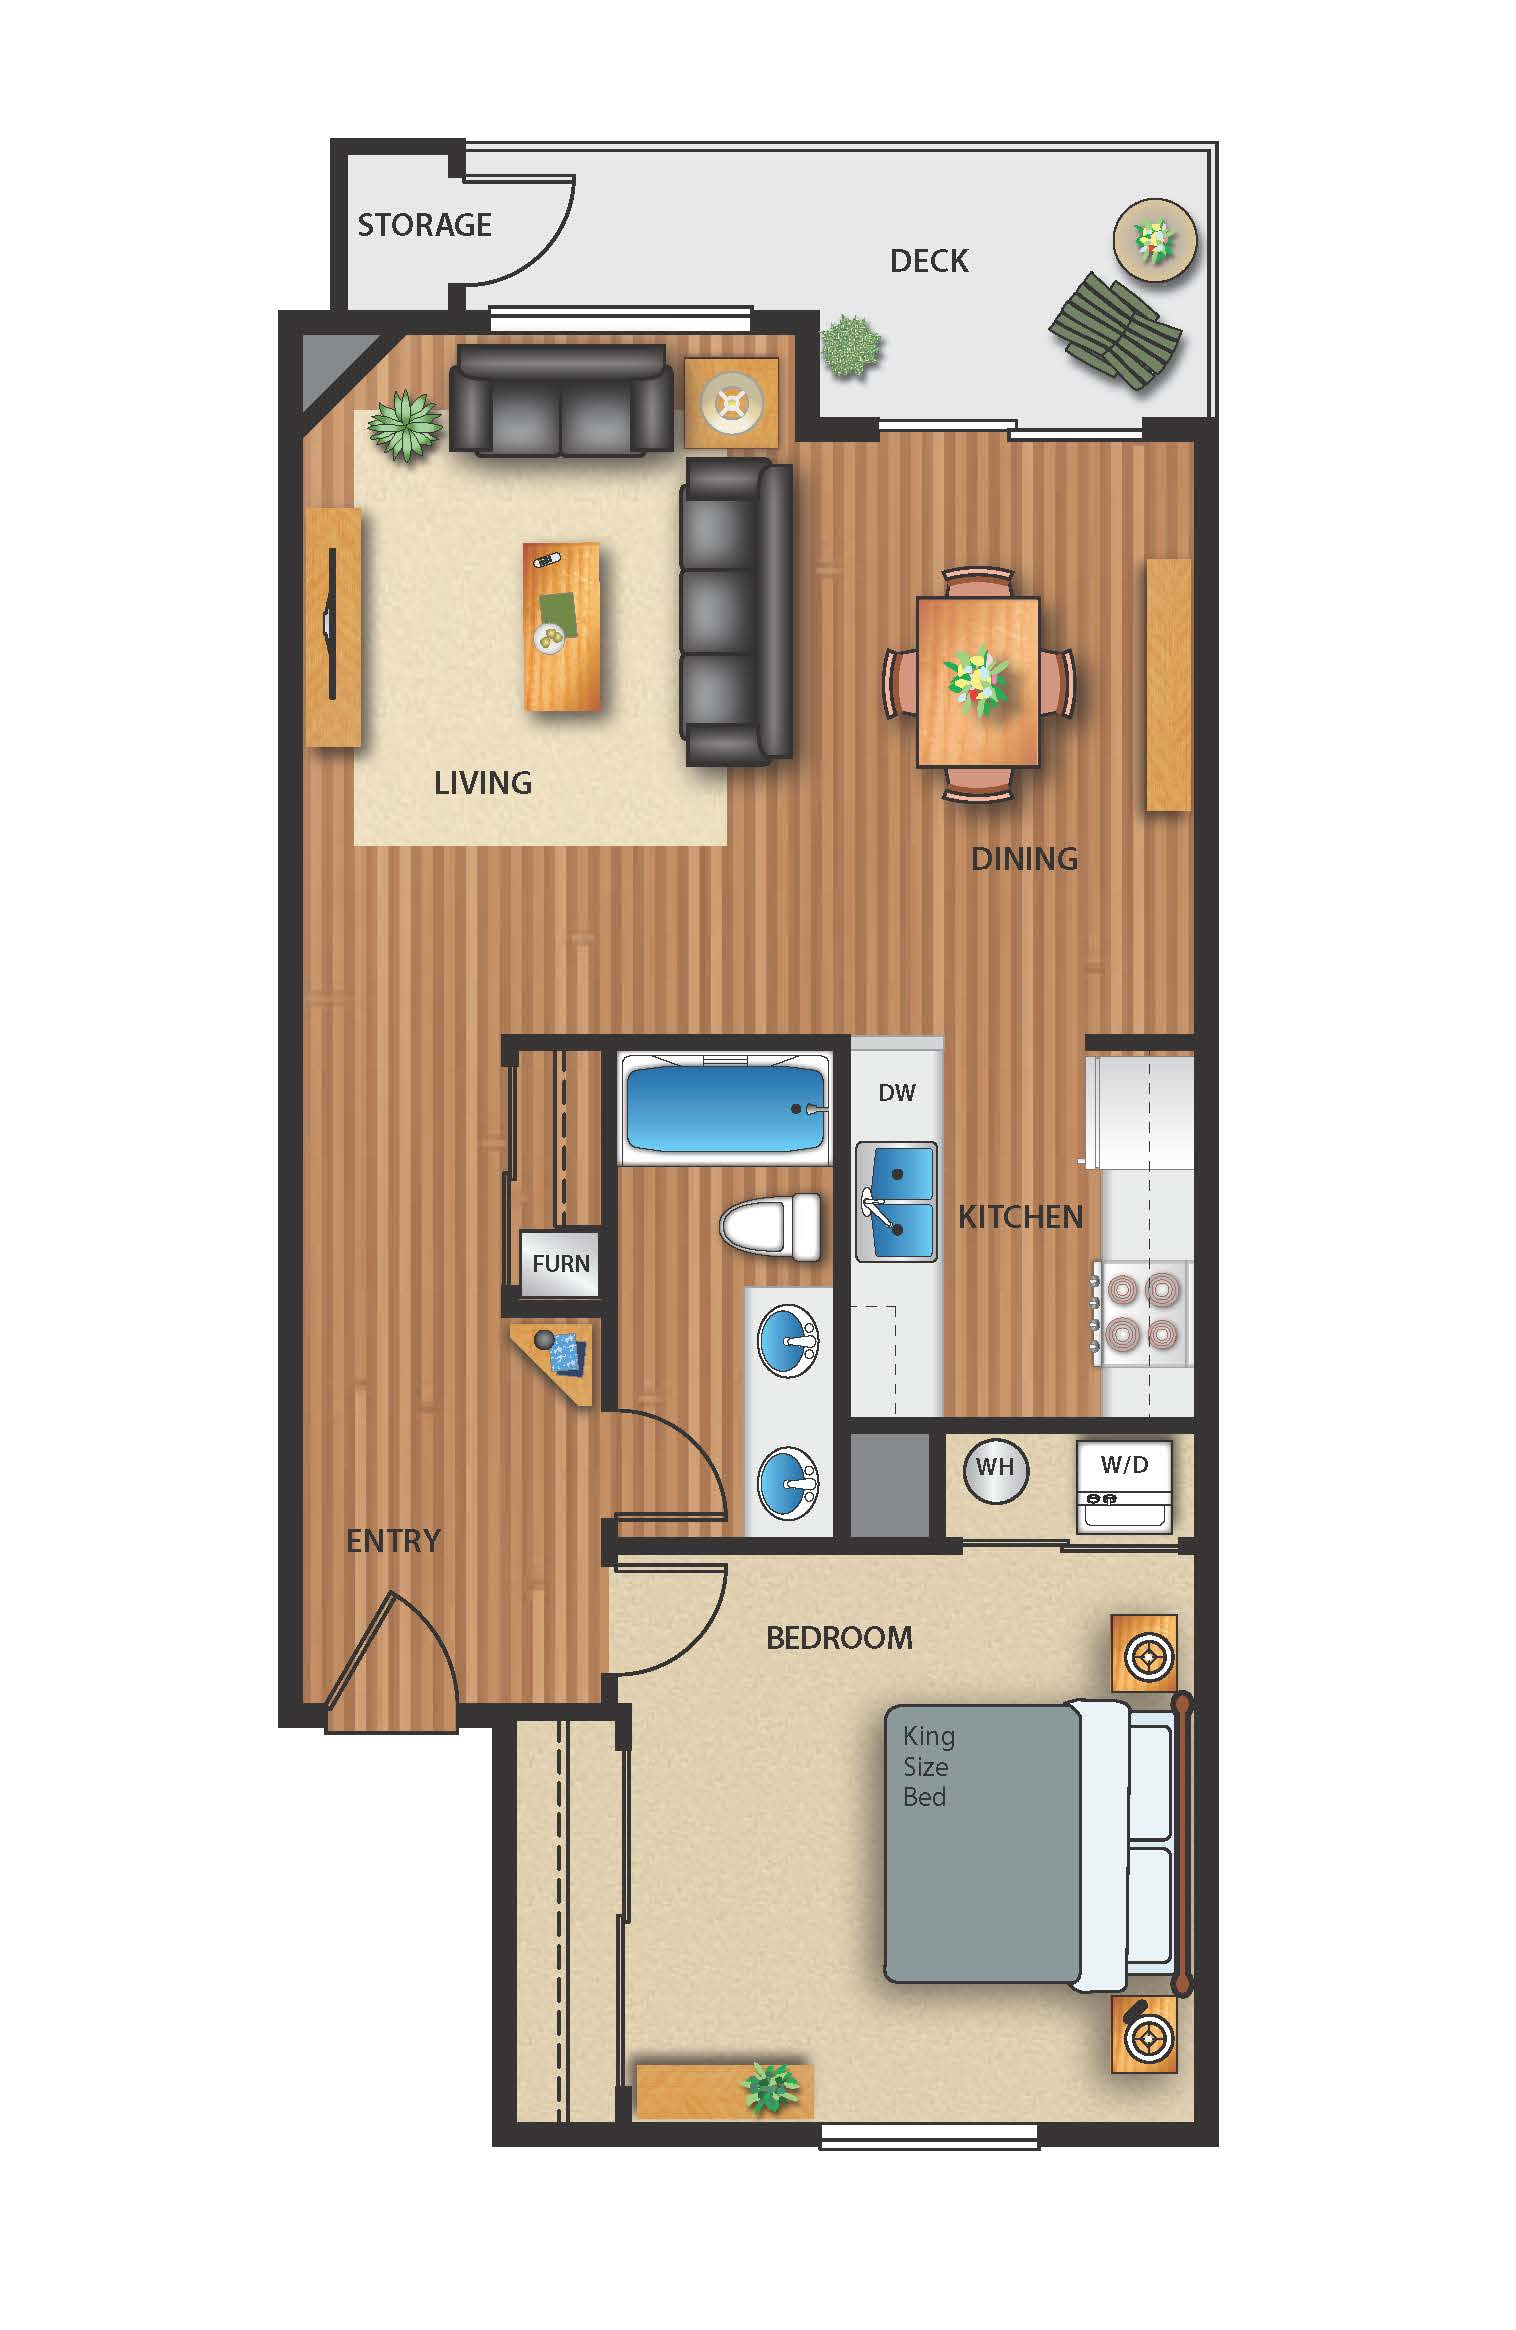 Floor plan image of 1 Bed 1 Bath Marina View